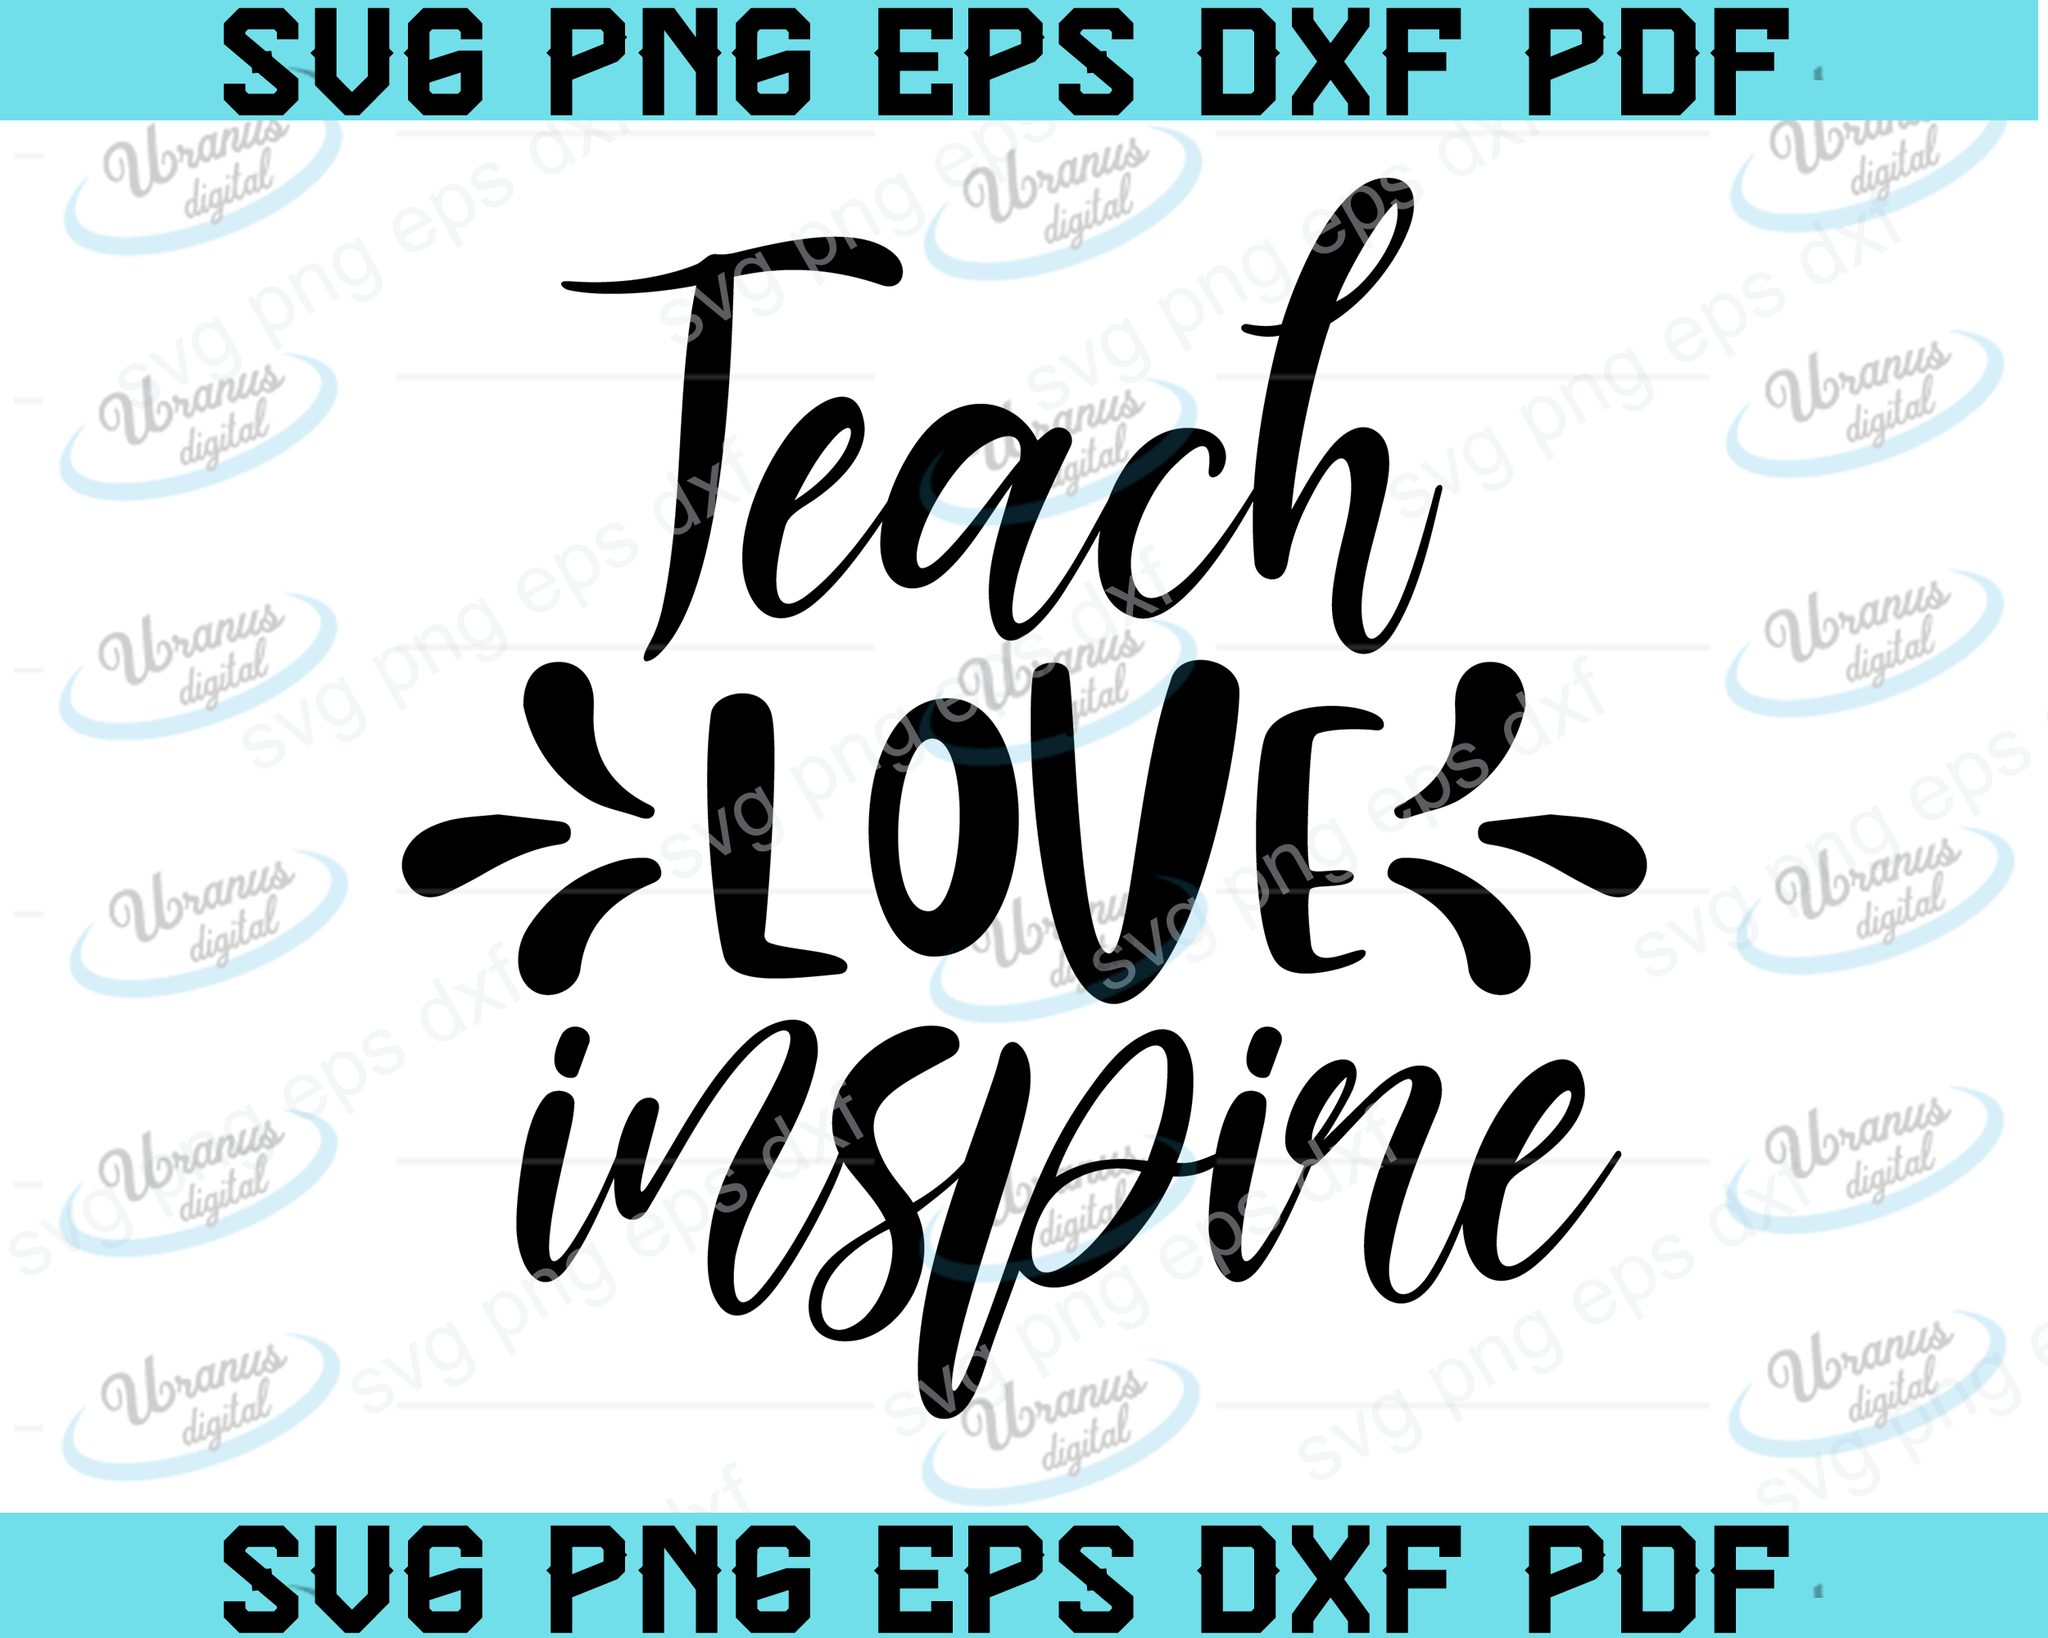 Teacher Quote SVG, Teach Love Inspire SVG, Teacher SVG, Teacher gift, Teacher cut file, Teach Love Inspire Cut file, Back School,